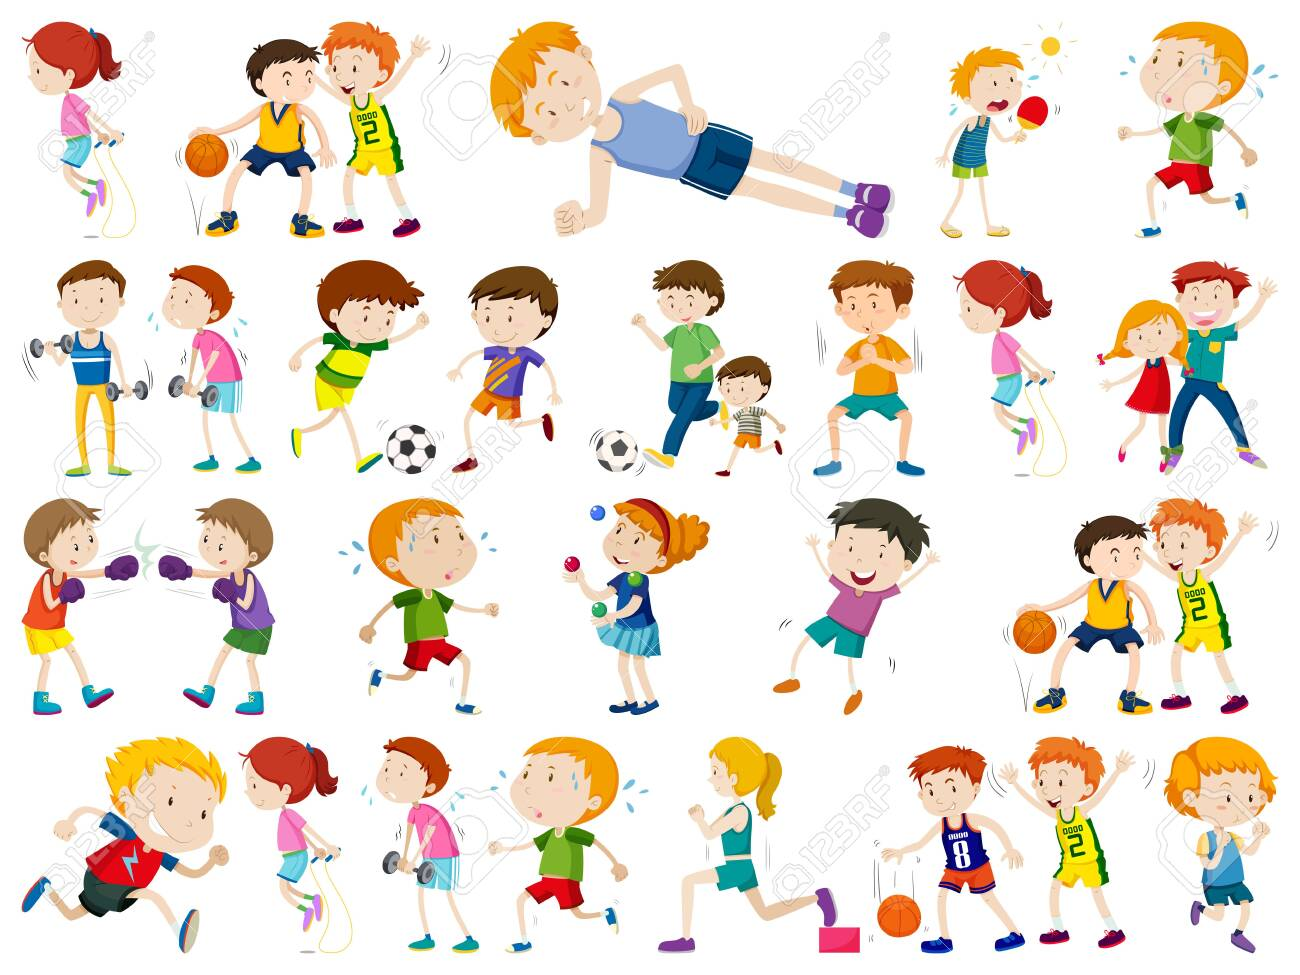 Kids exercising and being active in set illustration.